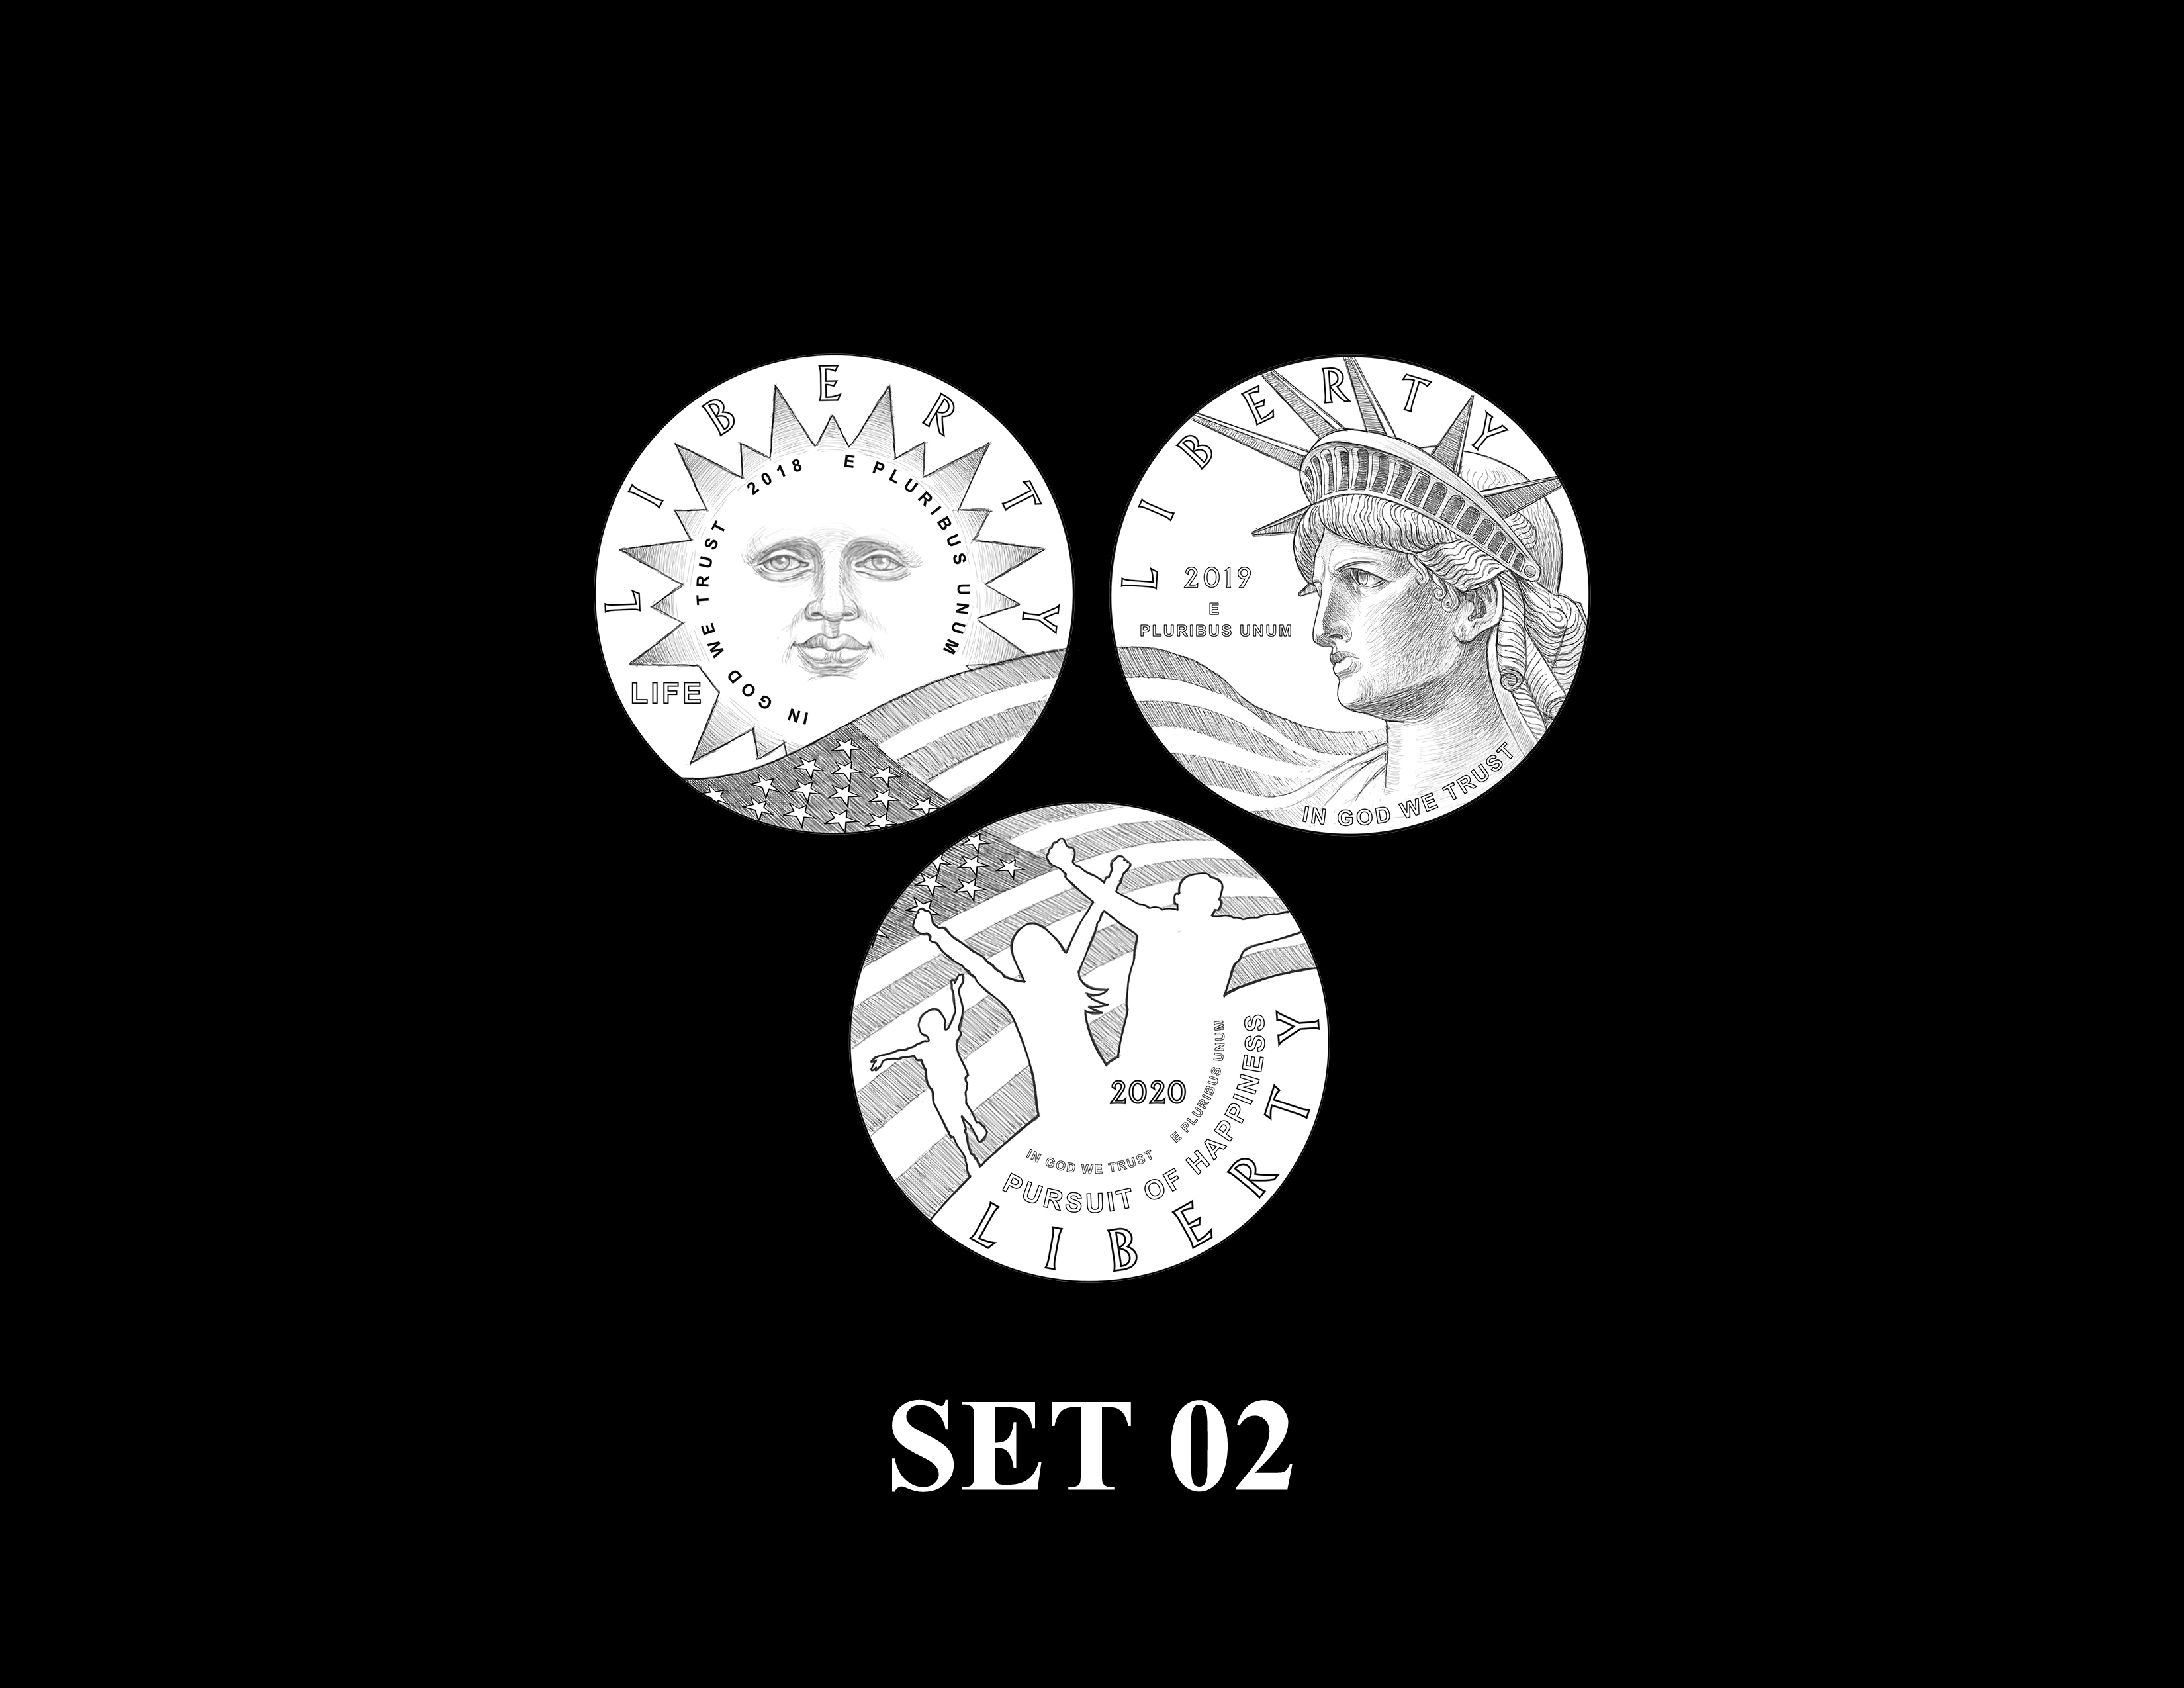 SET 02a - 2018 2019 and 2020 American Eagle Platinum Proof Program